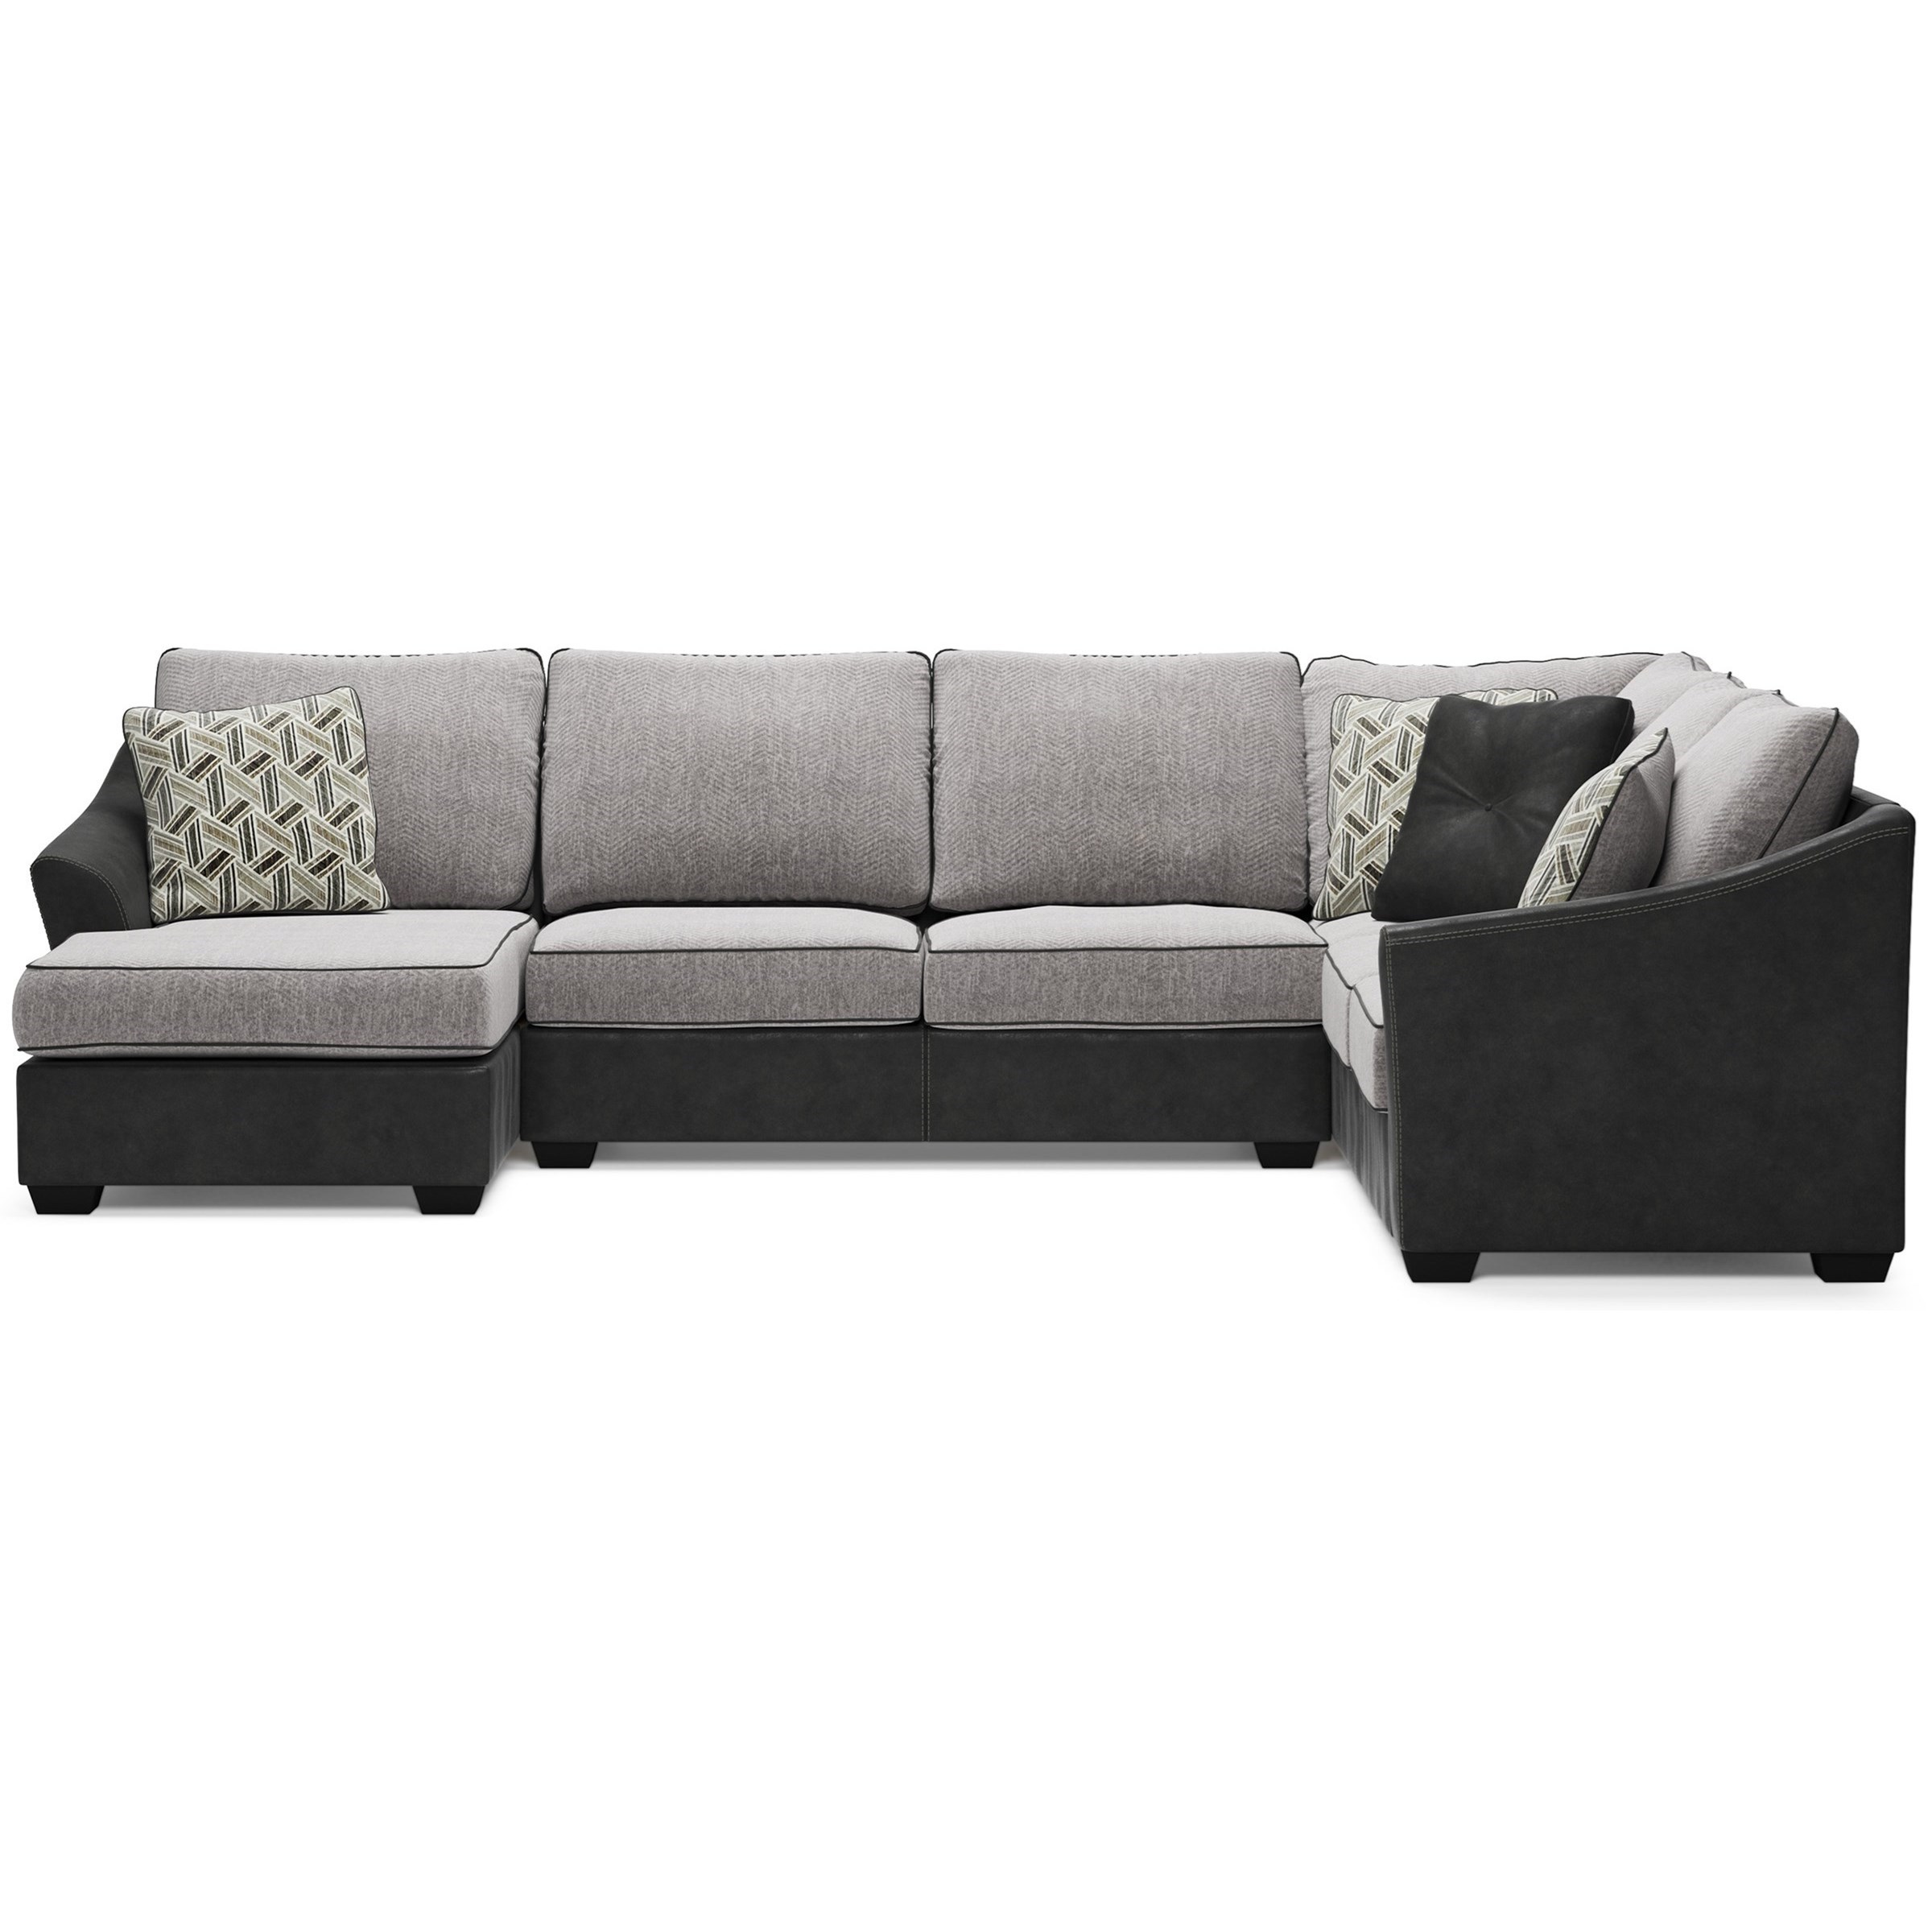 Bilgray Sectional with Left Chaise by Signature Design by Ashley at Zak's Warehouse Clearance Center